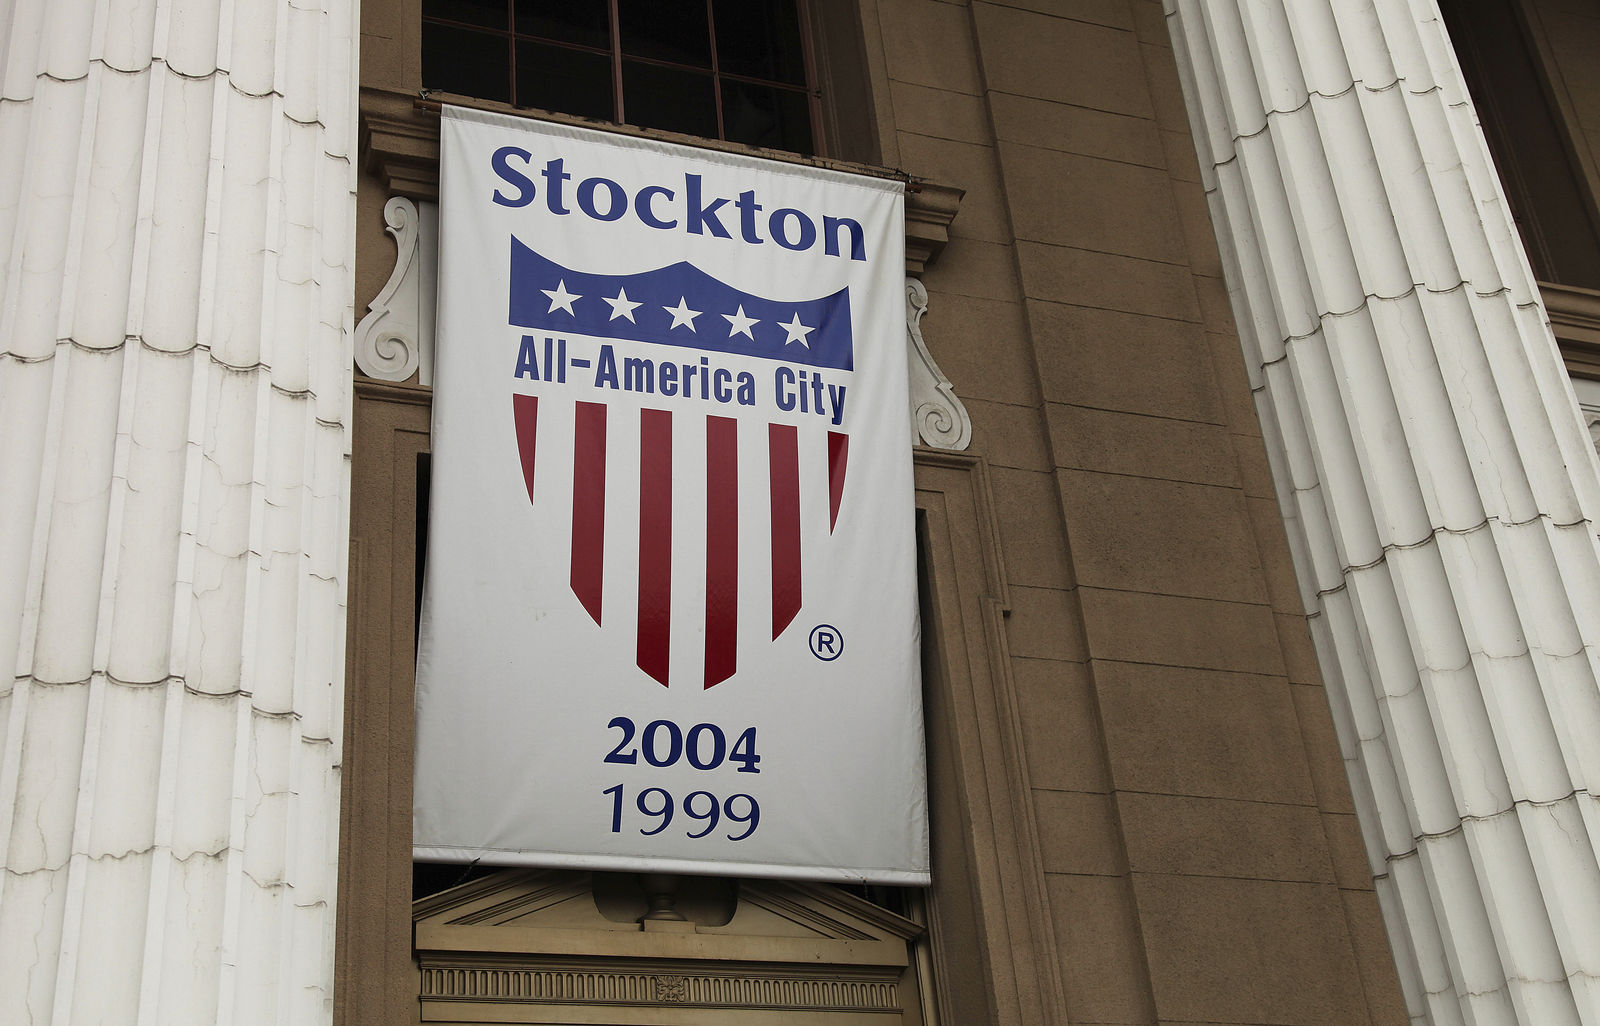 File - In this Feb. 29, 2012 file photo, a banner proclaiming Stockton as an All-America city hangs from city hall in Stockton, Calif. Stockton was once known as the foreclosure capital of the country and for one of the nation's largest municipal bankruptcies. Now, it's led by Mayor Michael Tubbs who has initiated a program to give 125 people who earn at or below the median household income of $46,033 receive a $500 debit card each month to spend any what they want. Tubbs says the program, which is privately funded, could be a solution to the city's poverty problem. (AP Photo/Ben Margot, file)